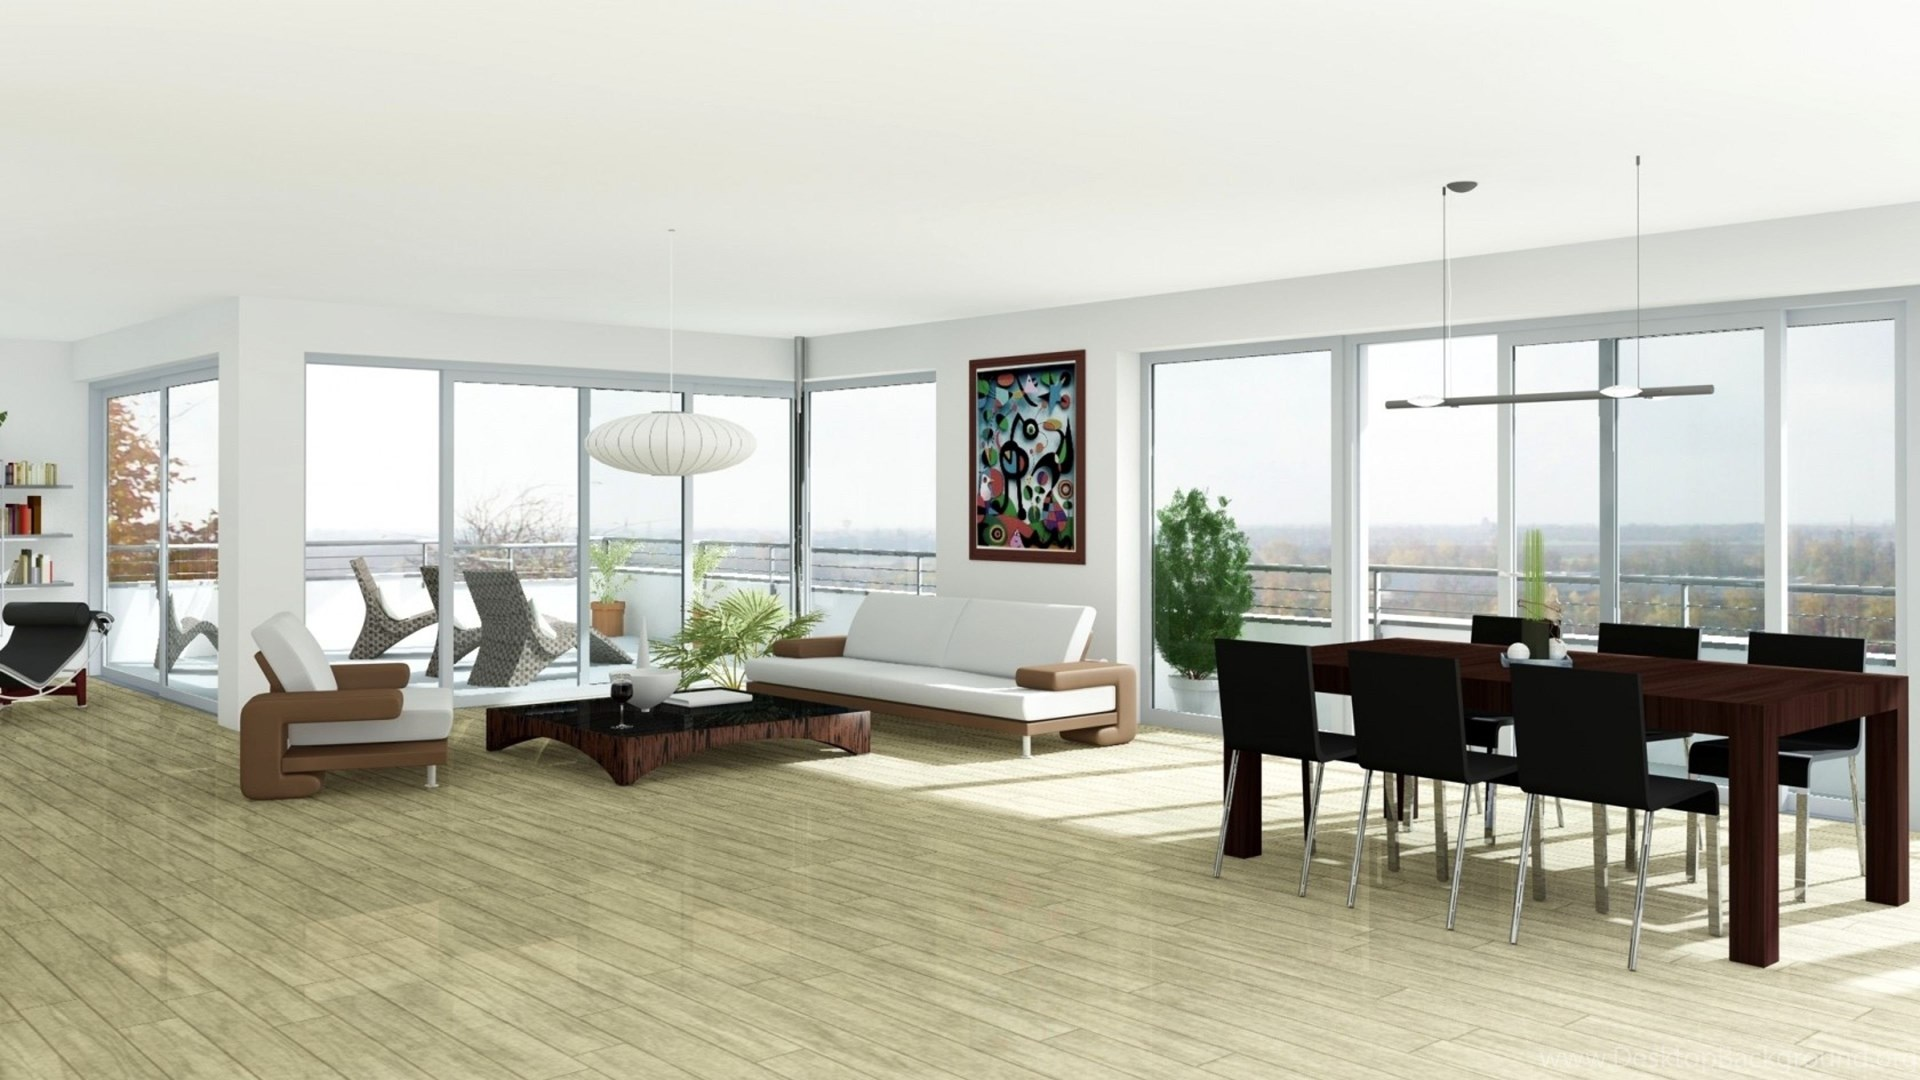 Download Wallpapers 3840x2160 Interior, Design, Style, Home, House ...